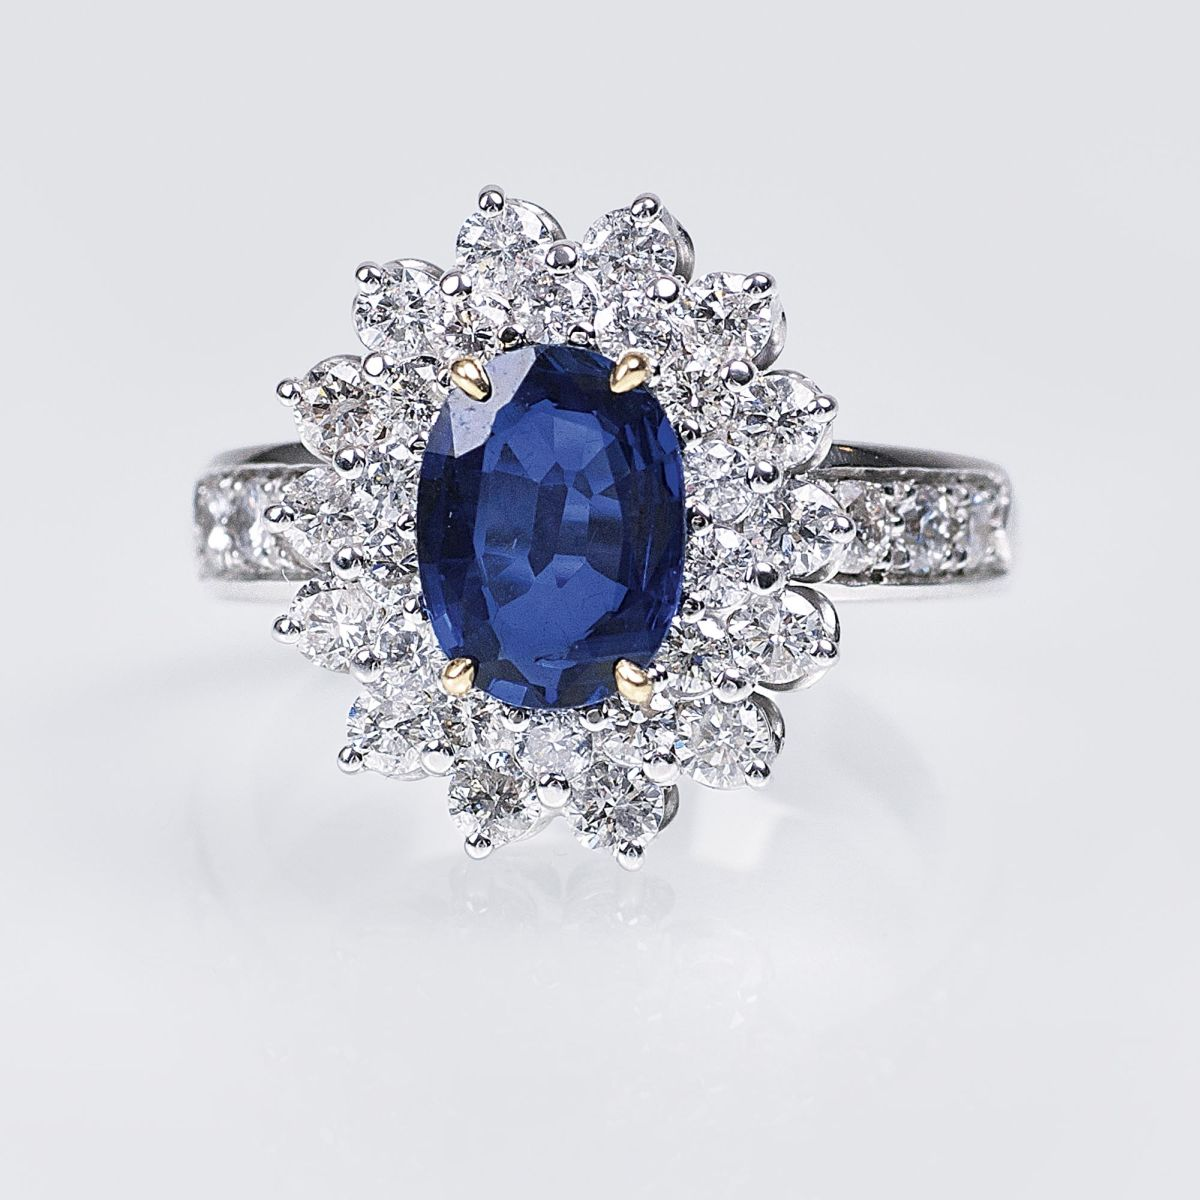 A highquality Ring with Natural Sapphire and Diamonds